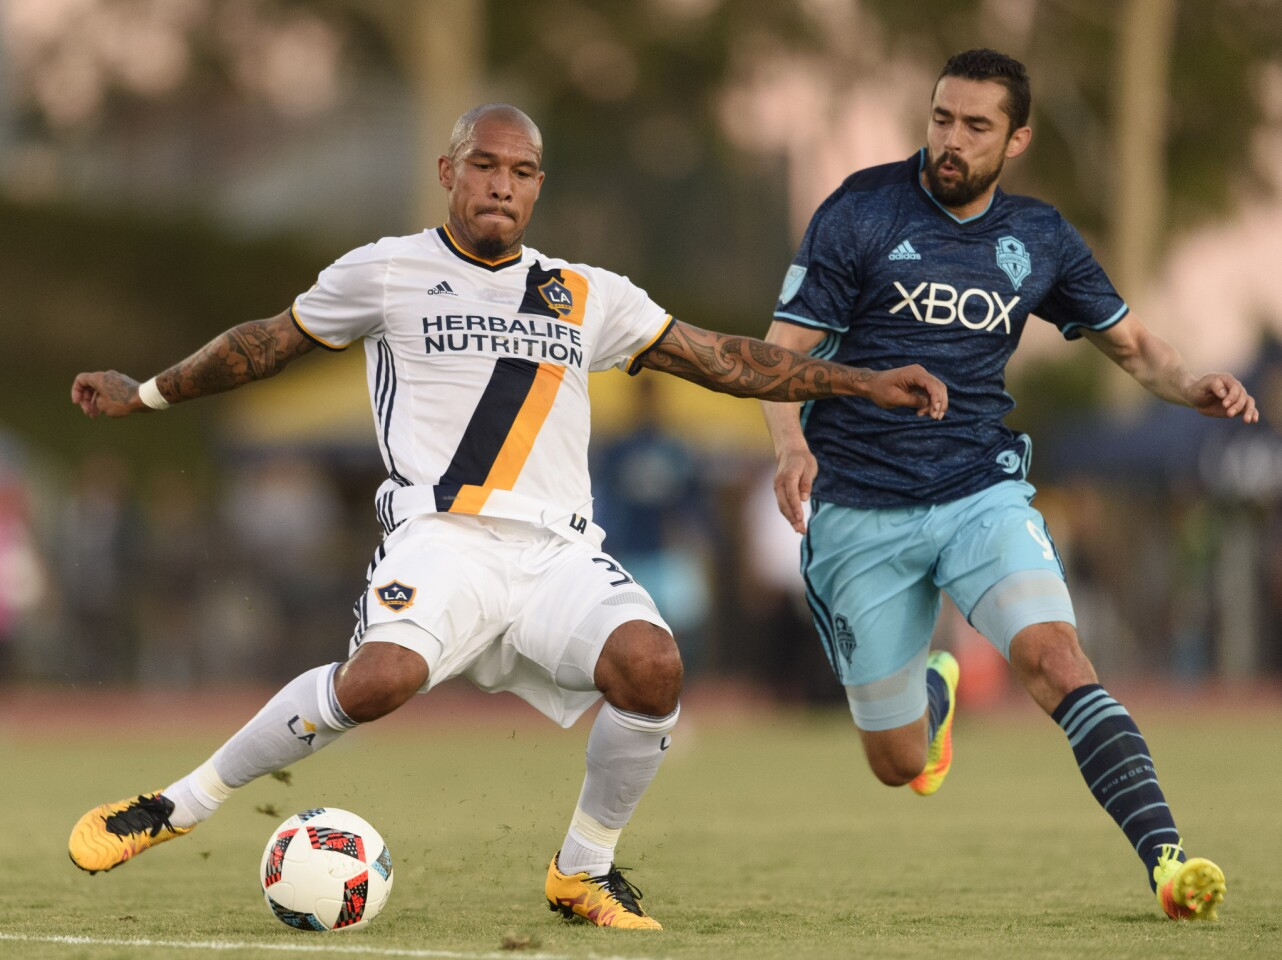 Jul 20, 2016; Los Angeles, CA, USA; LA Galaxy midfielder Nigel de Jong (34) moves the ball defended by Seattle Sounders FC forward Herculez Gomez (9) during the first half at StubHub Center. Mandatory Credit: Kelvin Kuo-USA TODAY Sports ** Usable by SD ONLY **